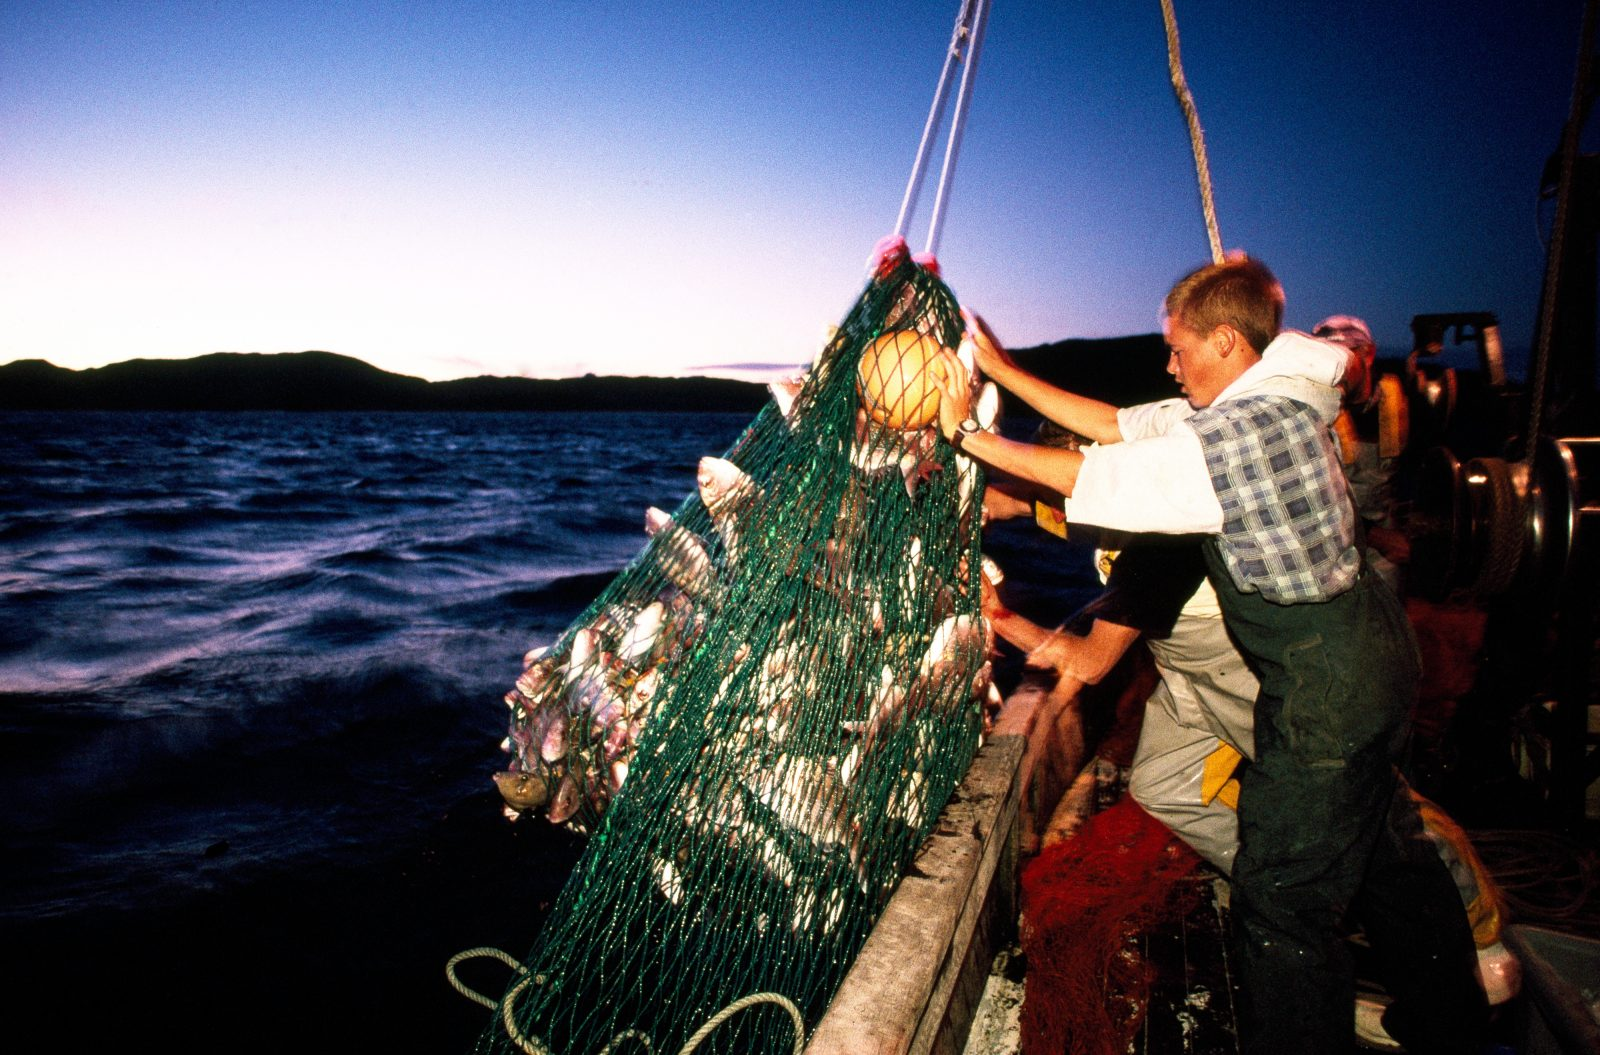 As commercial and recreational fishers compete for diminishing numbers of the more popular inshore fish species, catches like this tonne of snapper being hauled aboard the Danish seiner Poseidon off Whitianga are an increasingly rare sight. The current cost of a tonne of snapper quota is $35,000, but has ranged as high as $60,000.